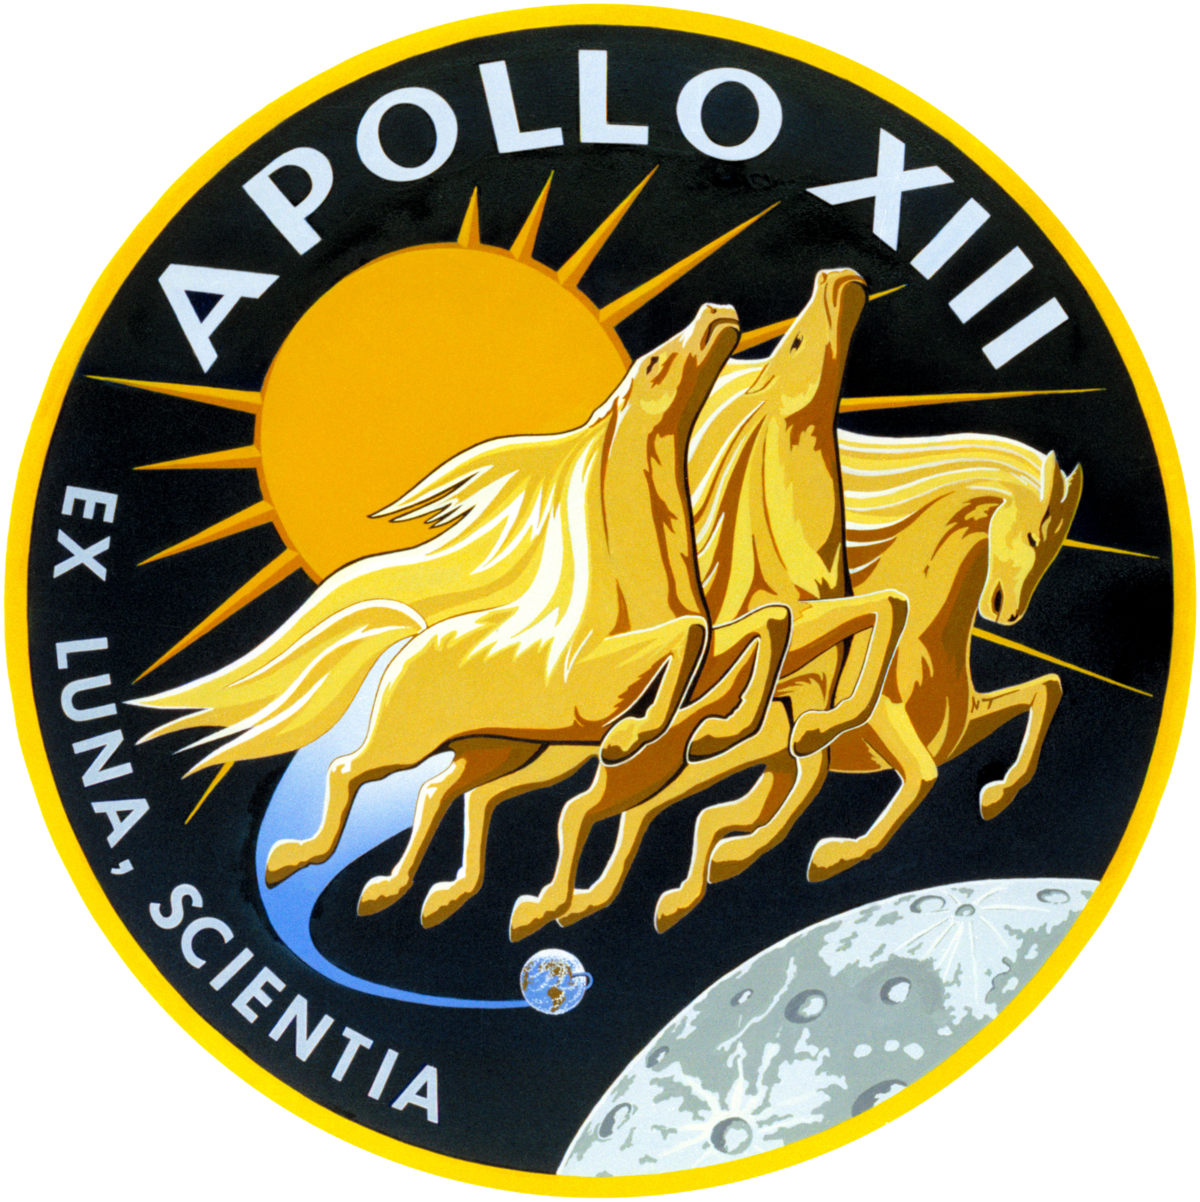 Apolo 13 Wikipedia La Enciclopedia Libre